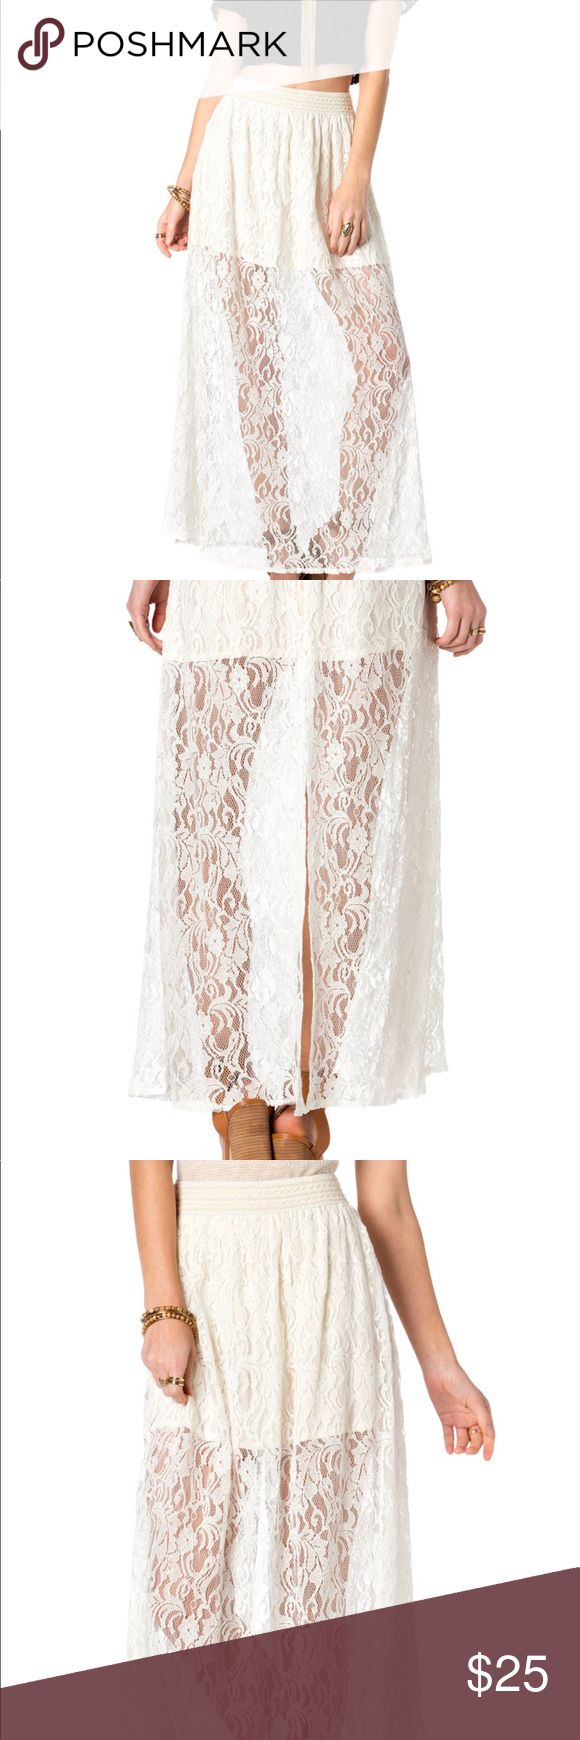 Miss Me Sheer Addiction lace maxi skirt Off white lace adds edgy dimension to a flirty maxi skirt detailed with tonal mini skirt, dramatic slit at back, and wide elastic waist band. 60% Cotton; 40% Nylon Gentle Machine Wash Cold Miss Me Skirts Maxi